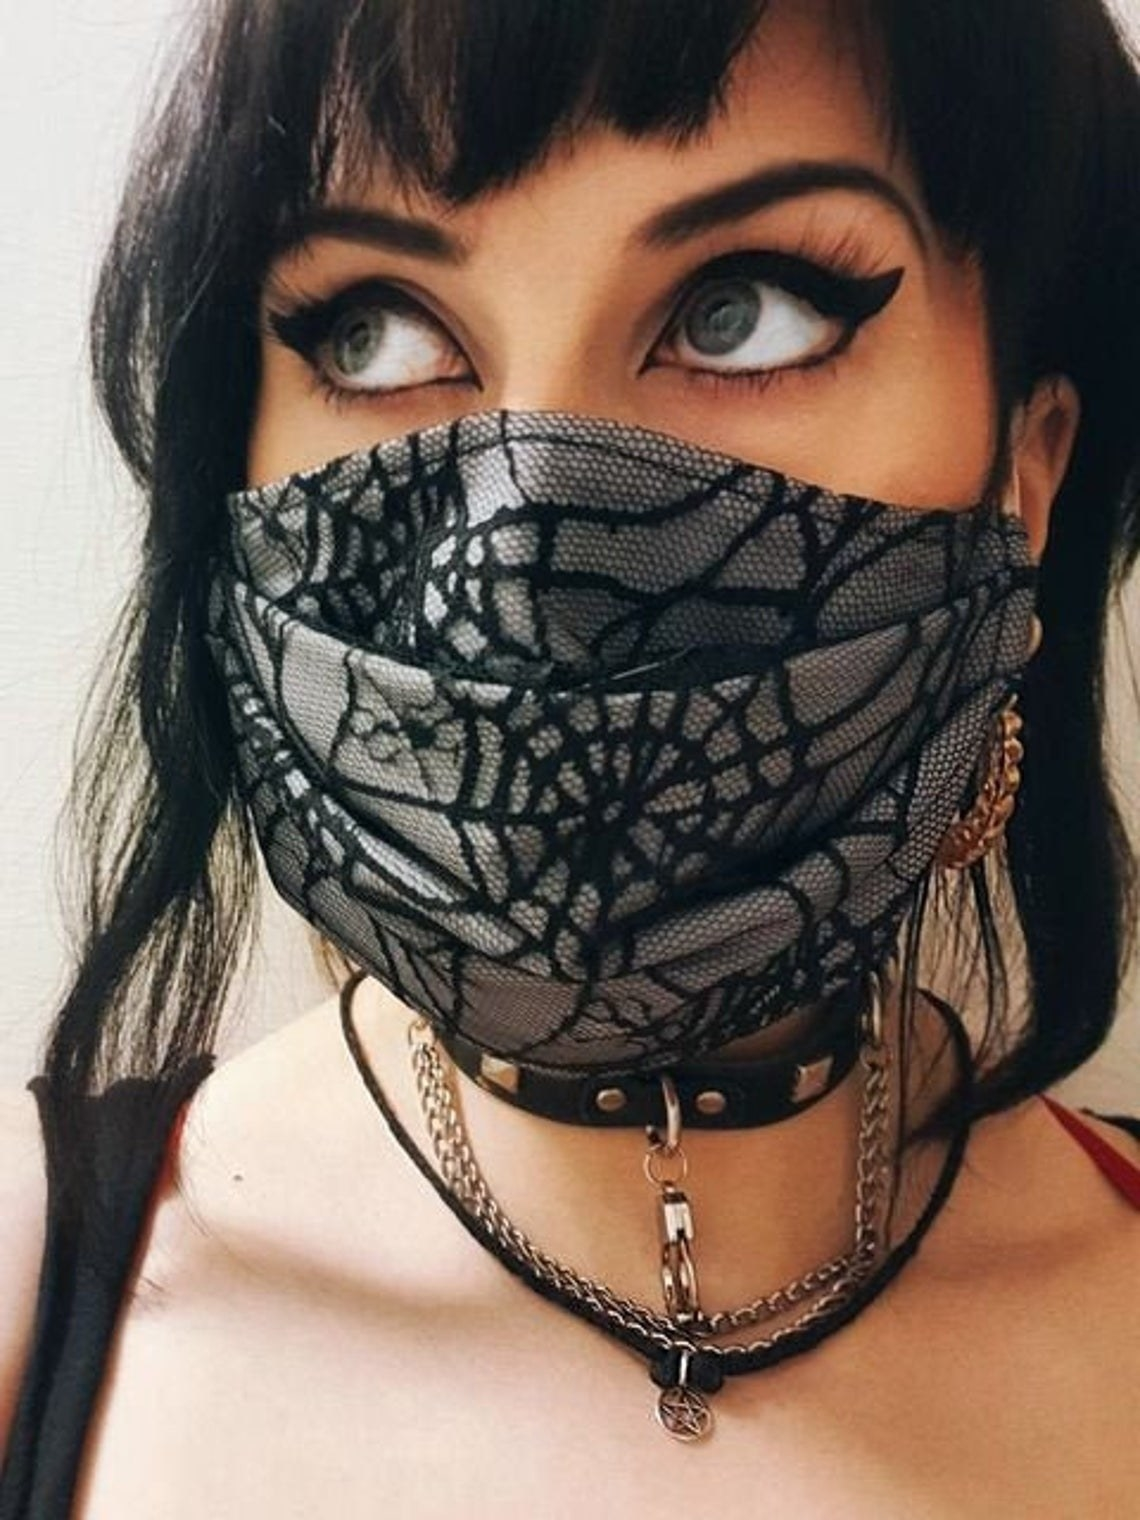 Pleated gray mask with black spiderweb lace on top